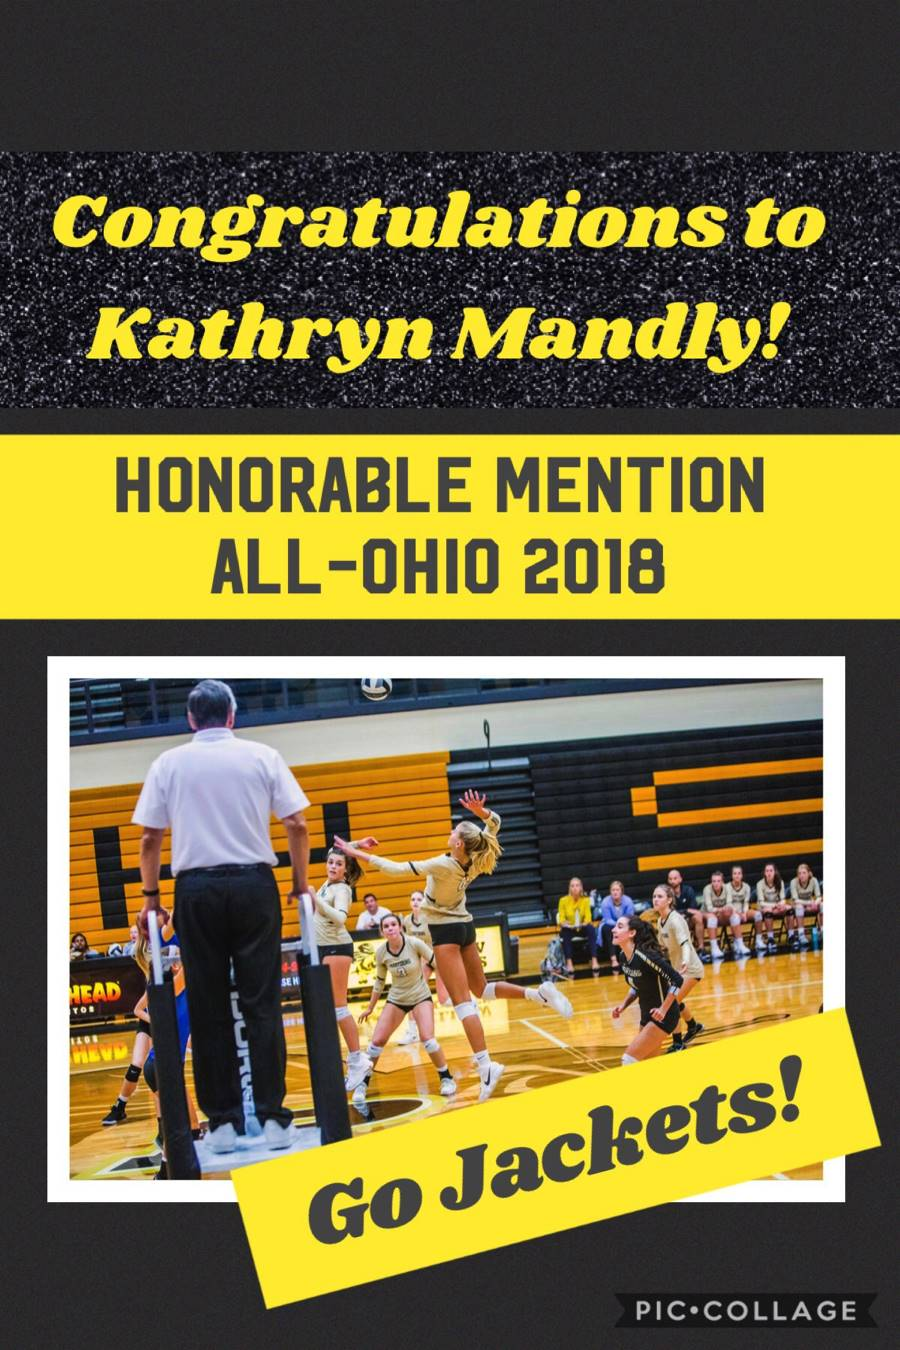 Kat Mandly - All-Ohio HM